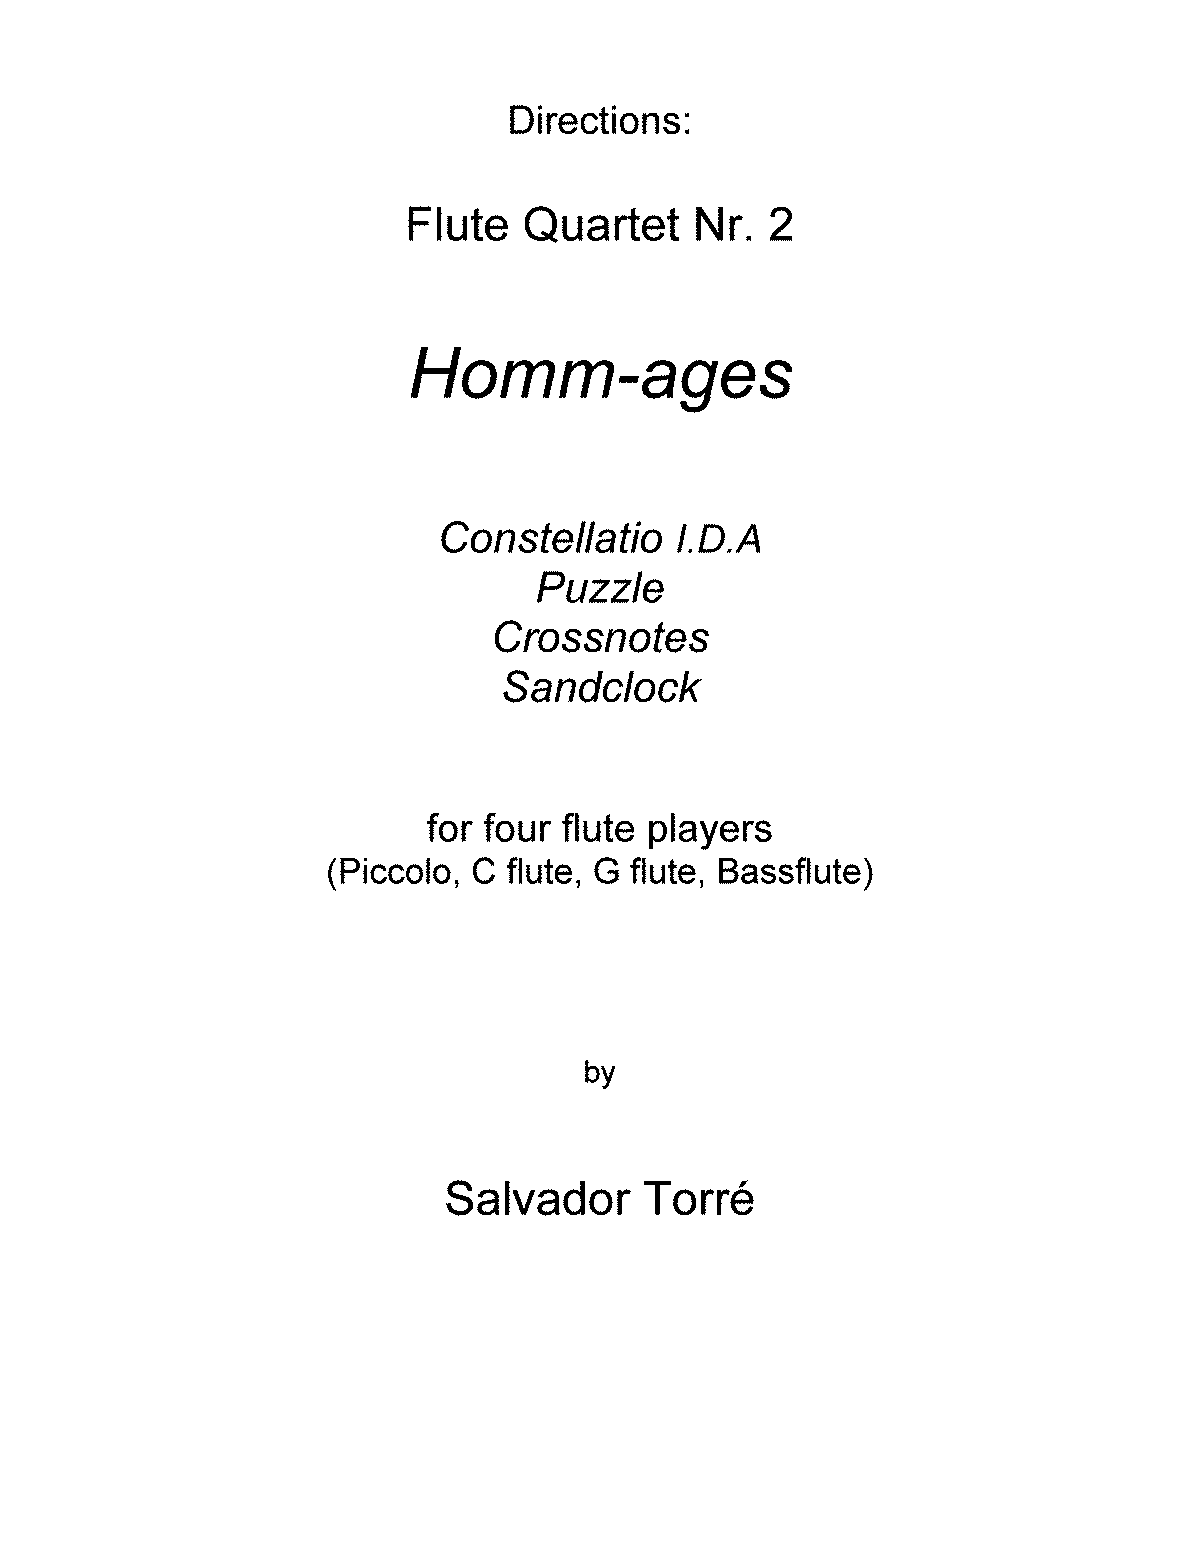 PMLP590726-Homm-ages-DIRECTIONS for musicians.pdf